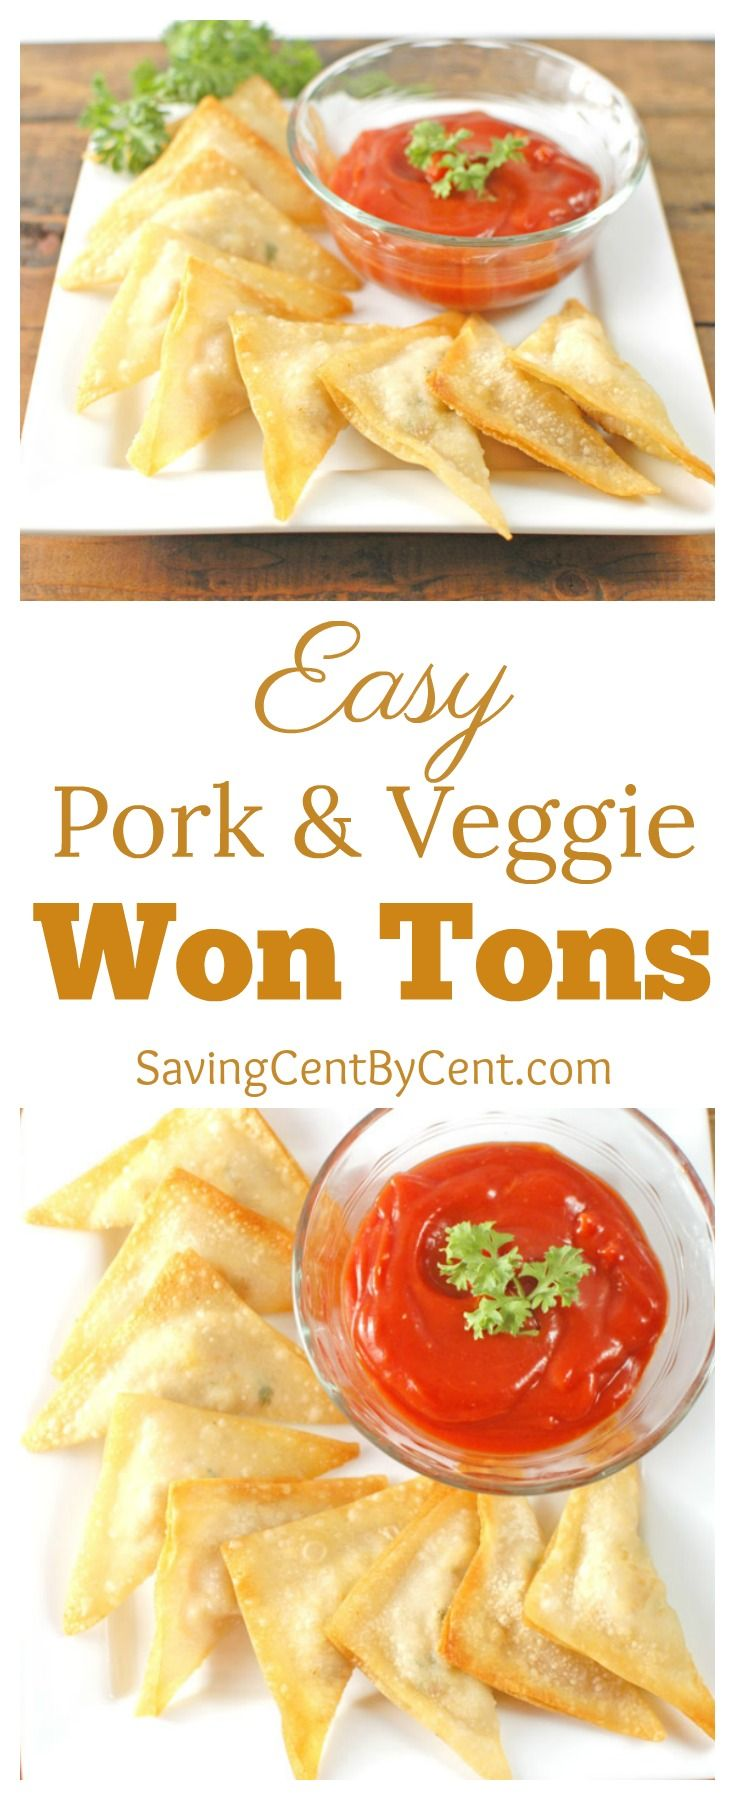 Easy Pork U0026 Veggie Won Tons